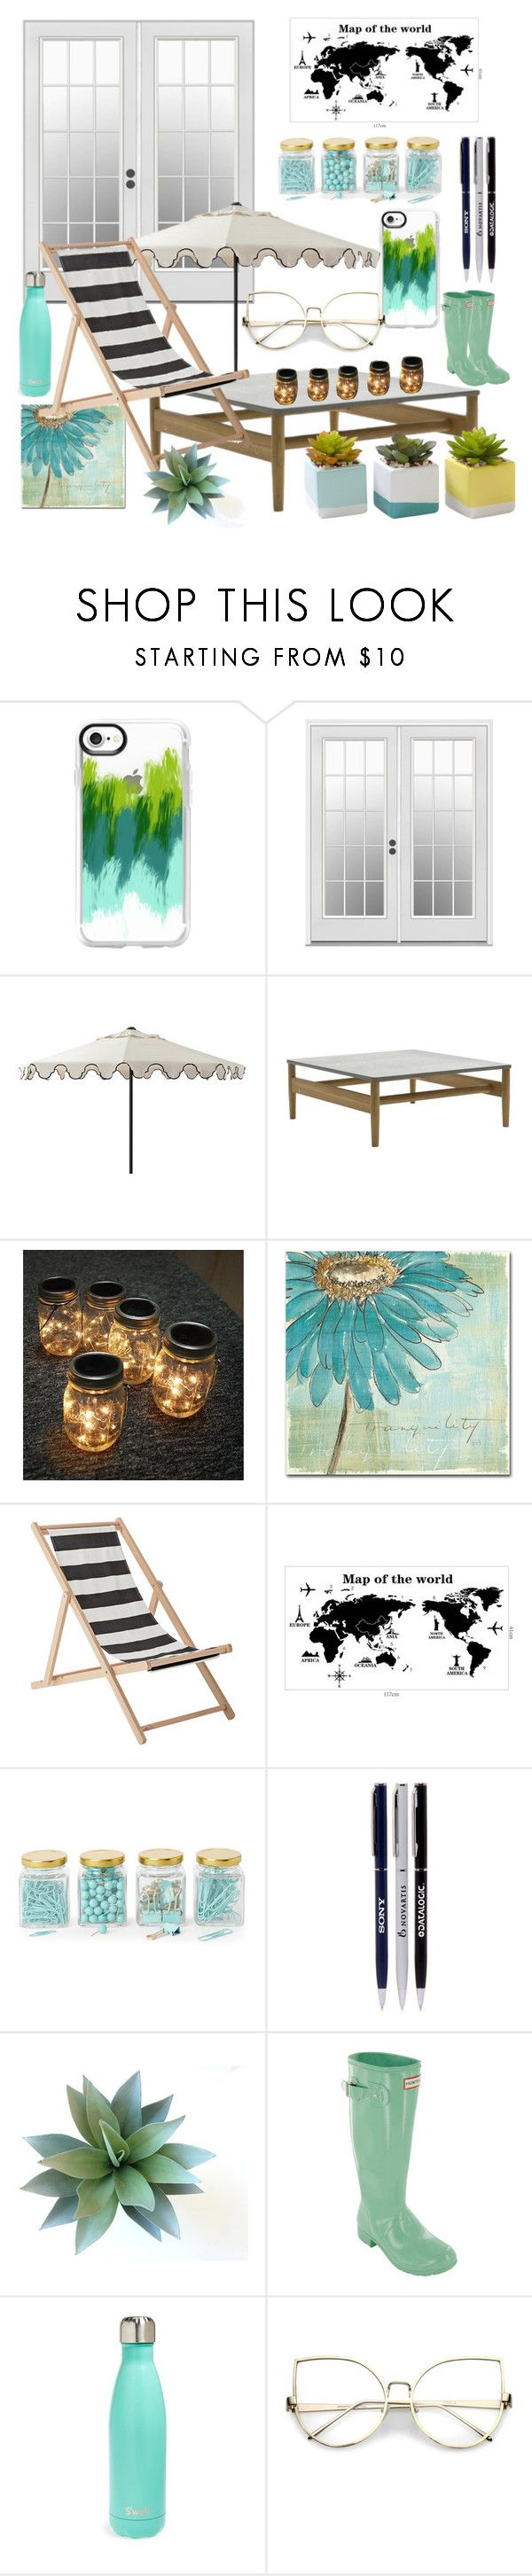 """""""Working outside"""" by aslittle10 ❤ liked on Polyvore featuring interior, interiors, interior design, home, home decor, interior decorating, Casetify, Ballard Designs, Trademark Fine Art and Bloomingville"""